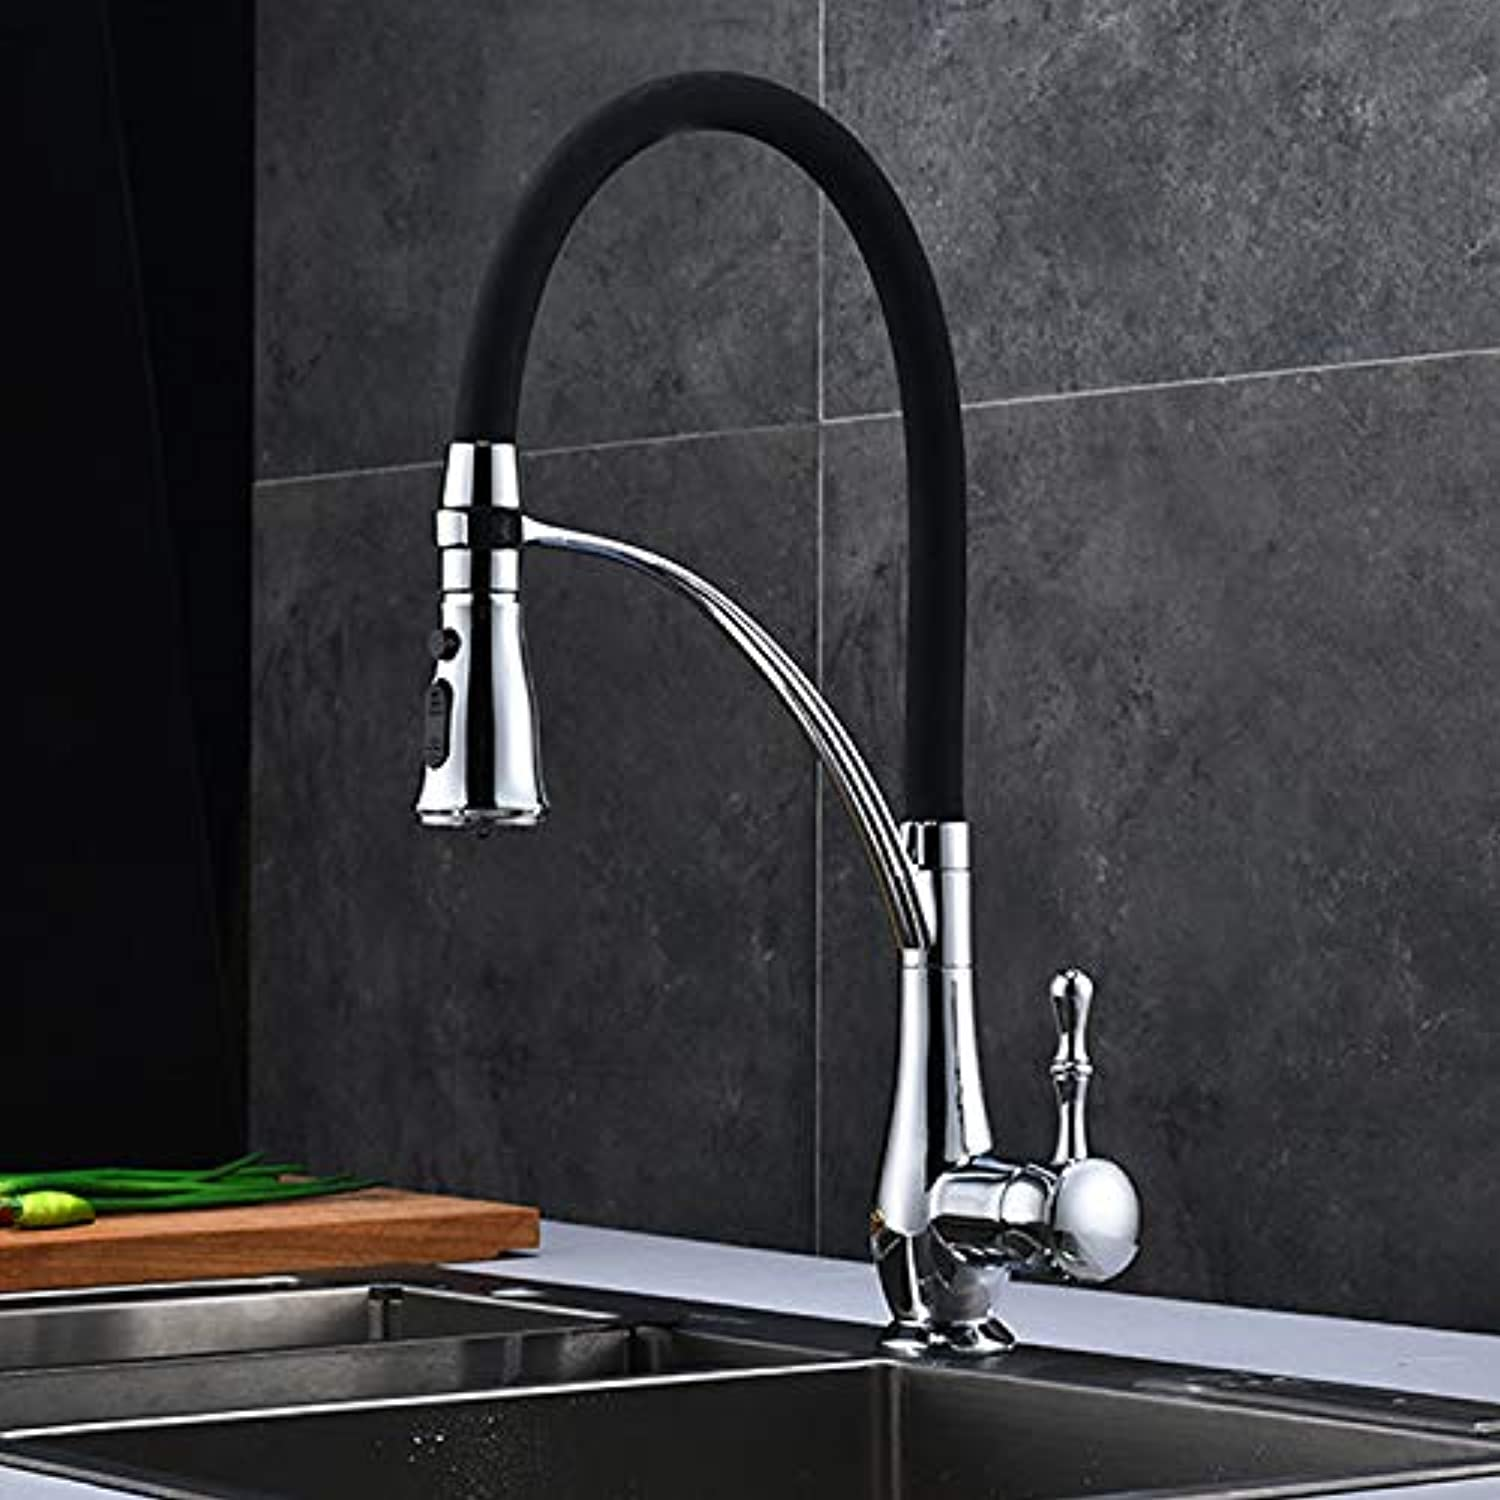 redOOY Taps Faucet Kitchen Sink Dish Kitchen Faucet Pull Kitchen Faucet 360 redating Hot And Cold Water Mixing Faucet